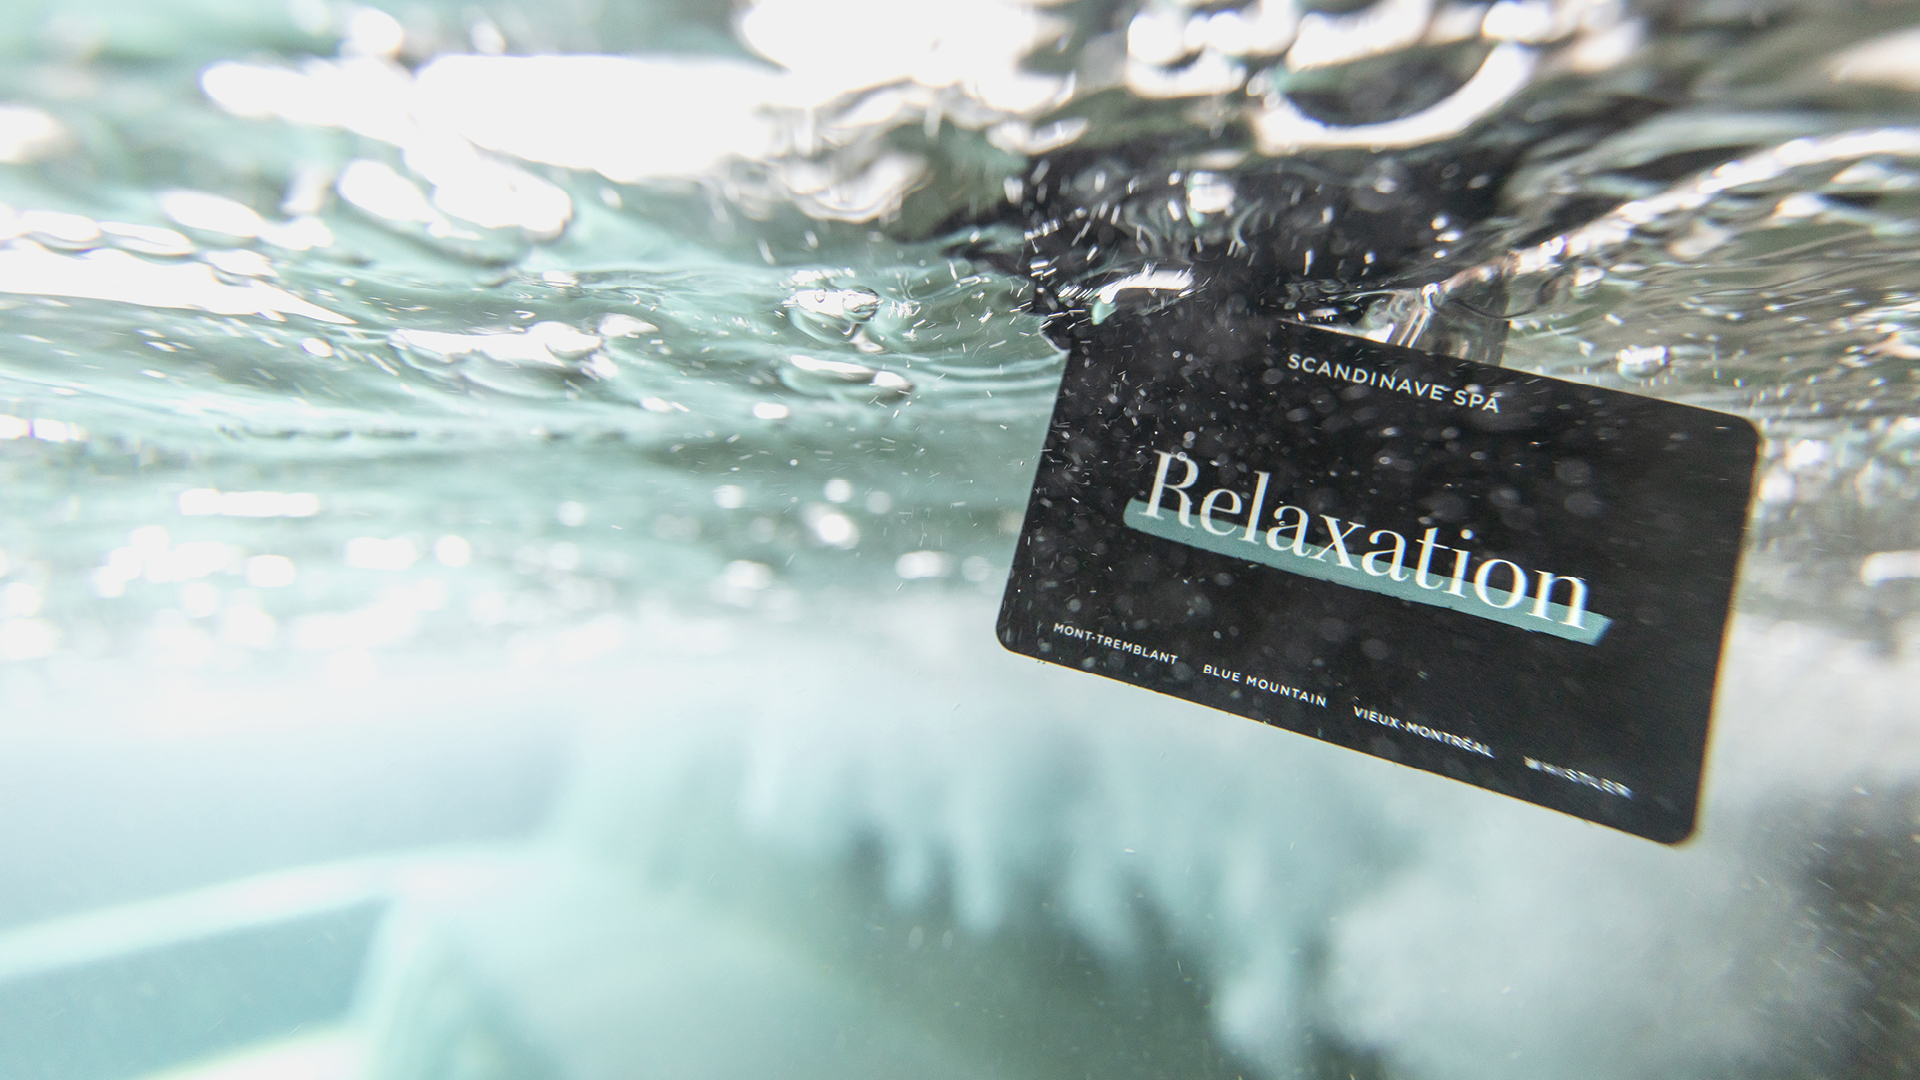 A Scandinave Spa Old Montreal membership card in the water.